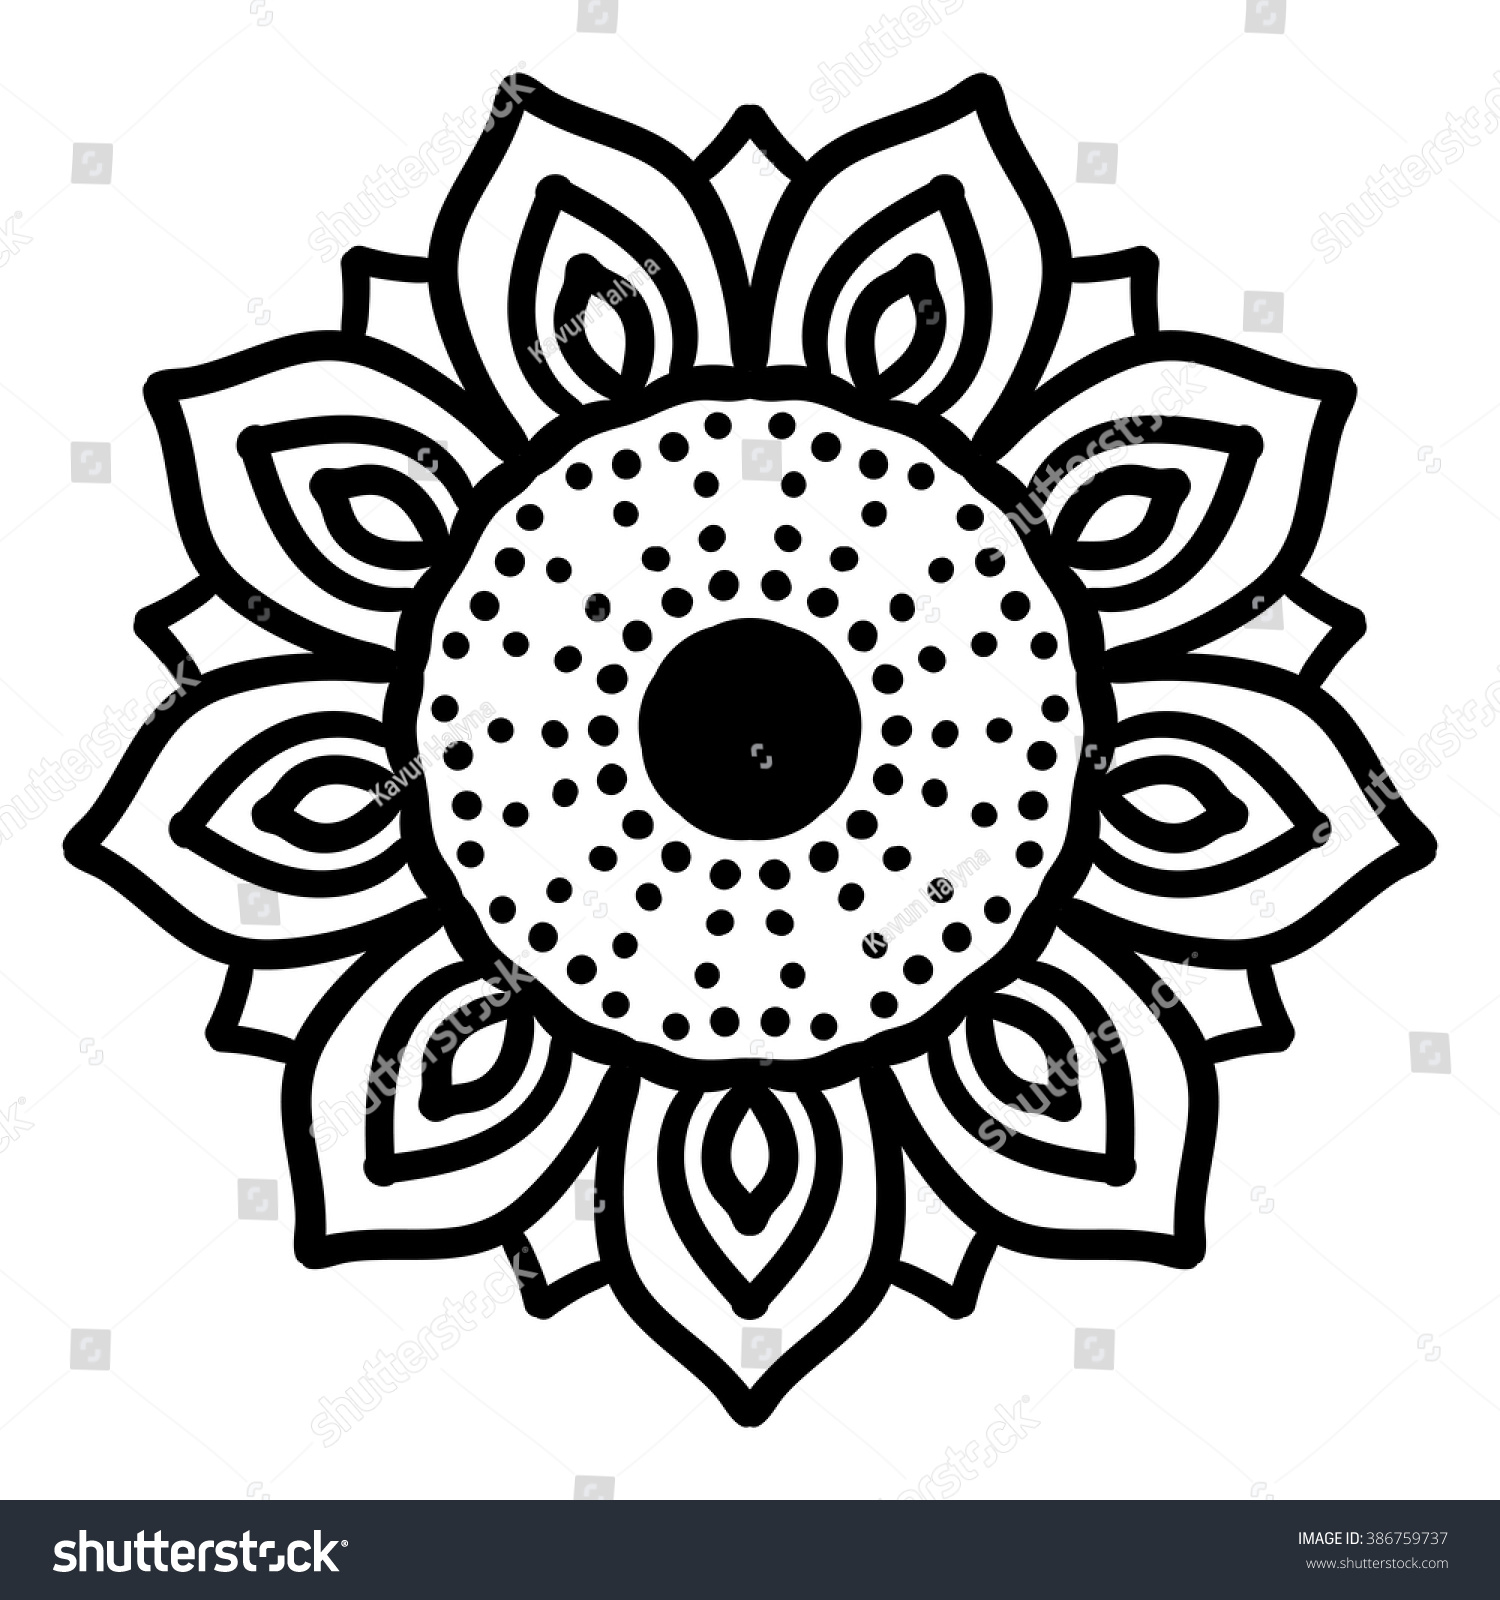 Vector Sunflower Black White Bohemian Texture Stock Vector ... for Clipart Sunflower Black And White  193tgx